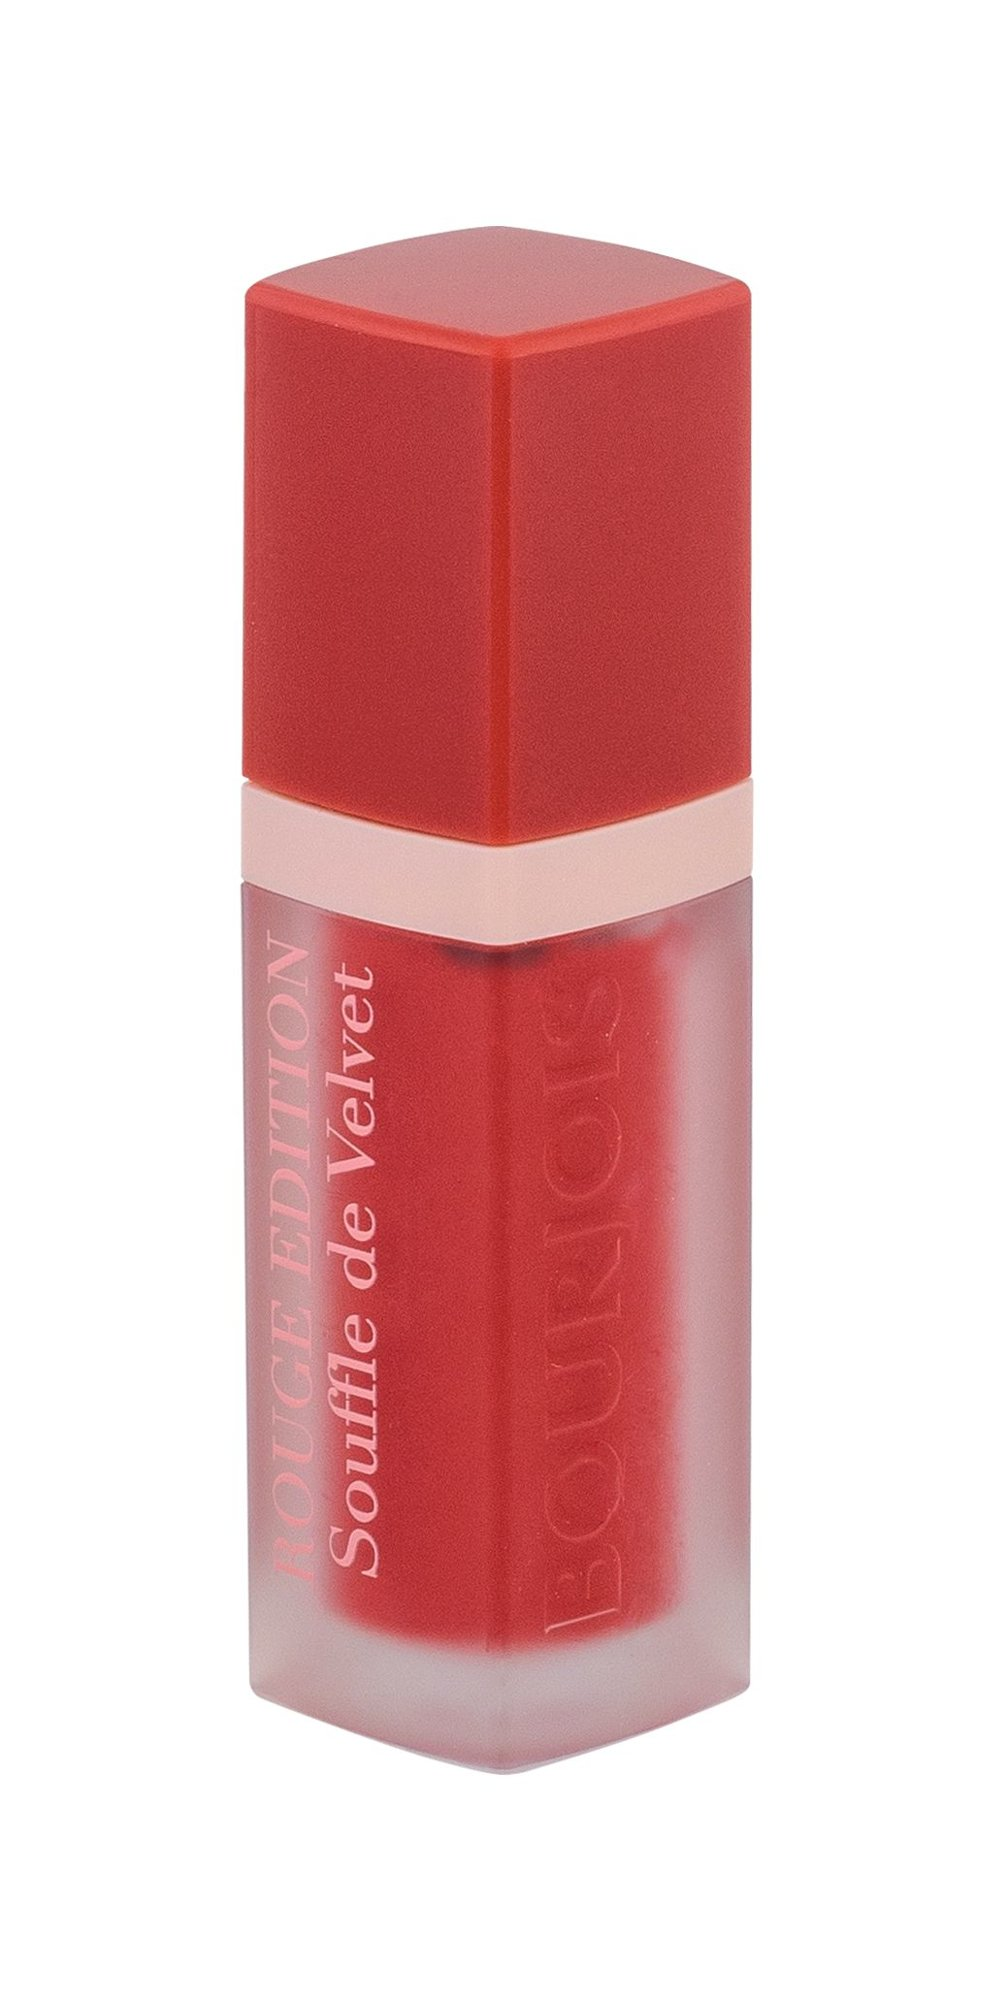 BOURJOIS Paris Rouge Edition Cosmetic 7,7ml 08 Carameli Melo